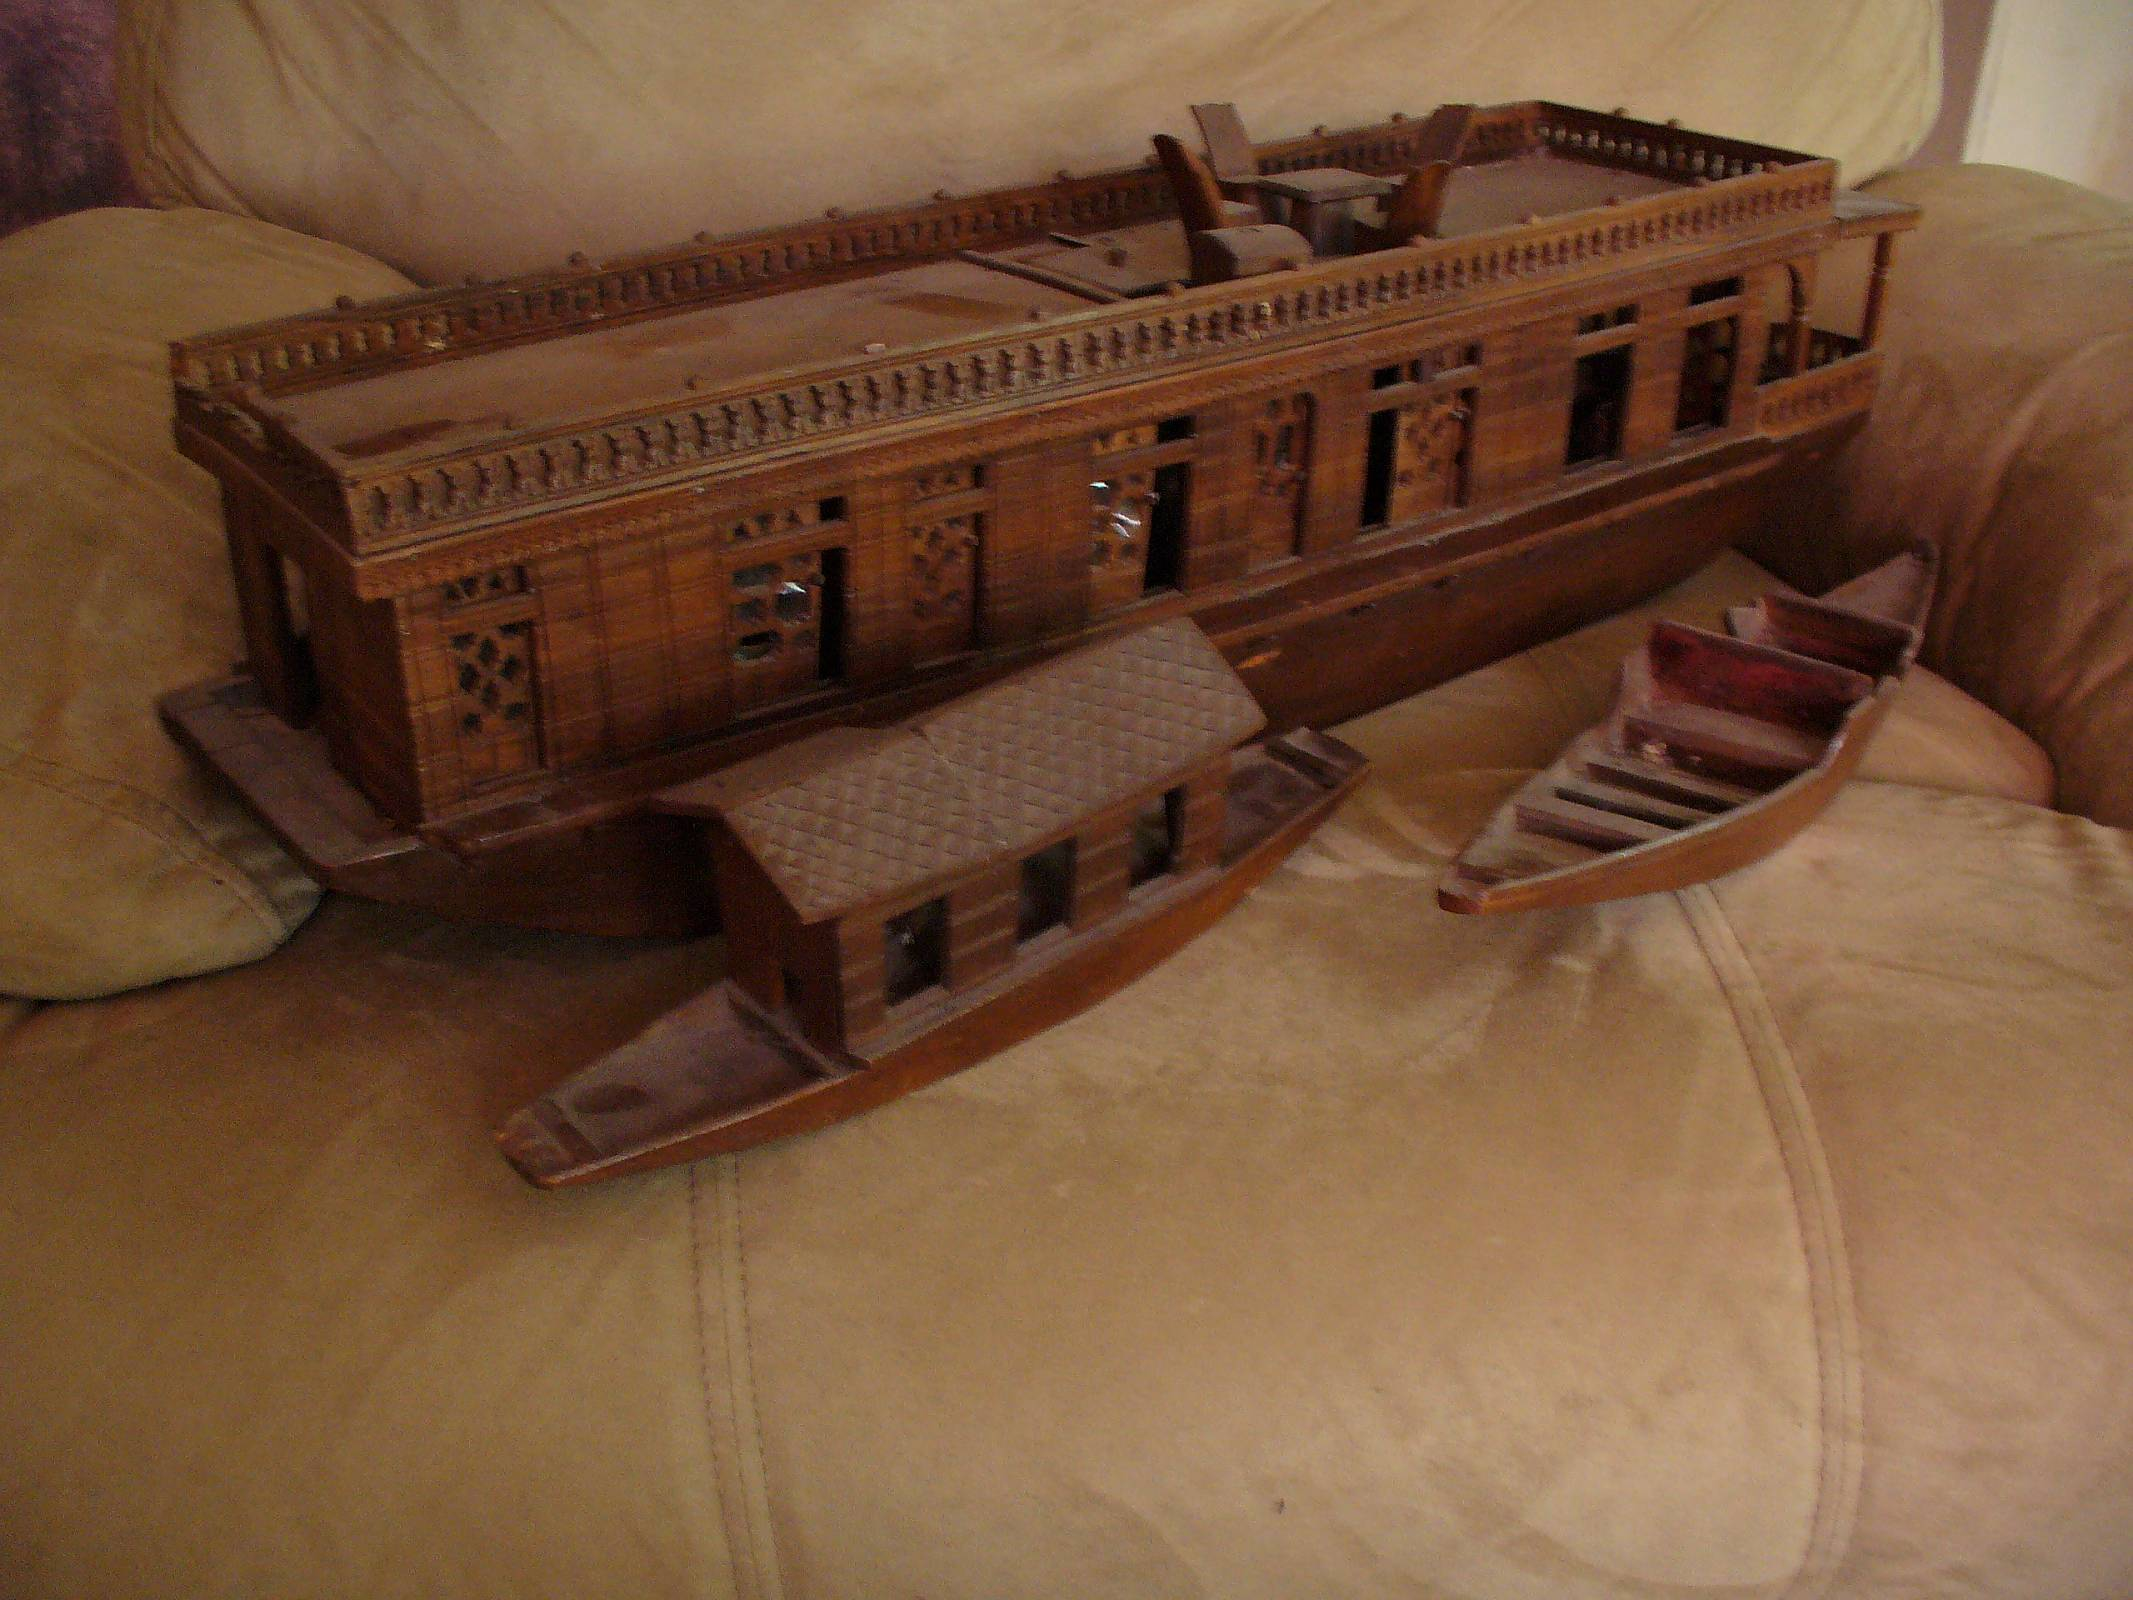 So who makes or has made a ship or boat model from woodsctratch